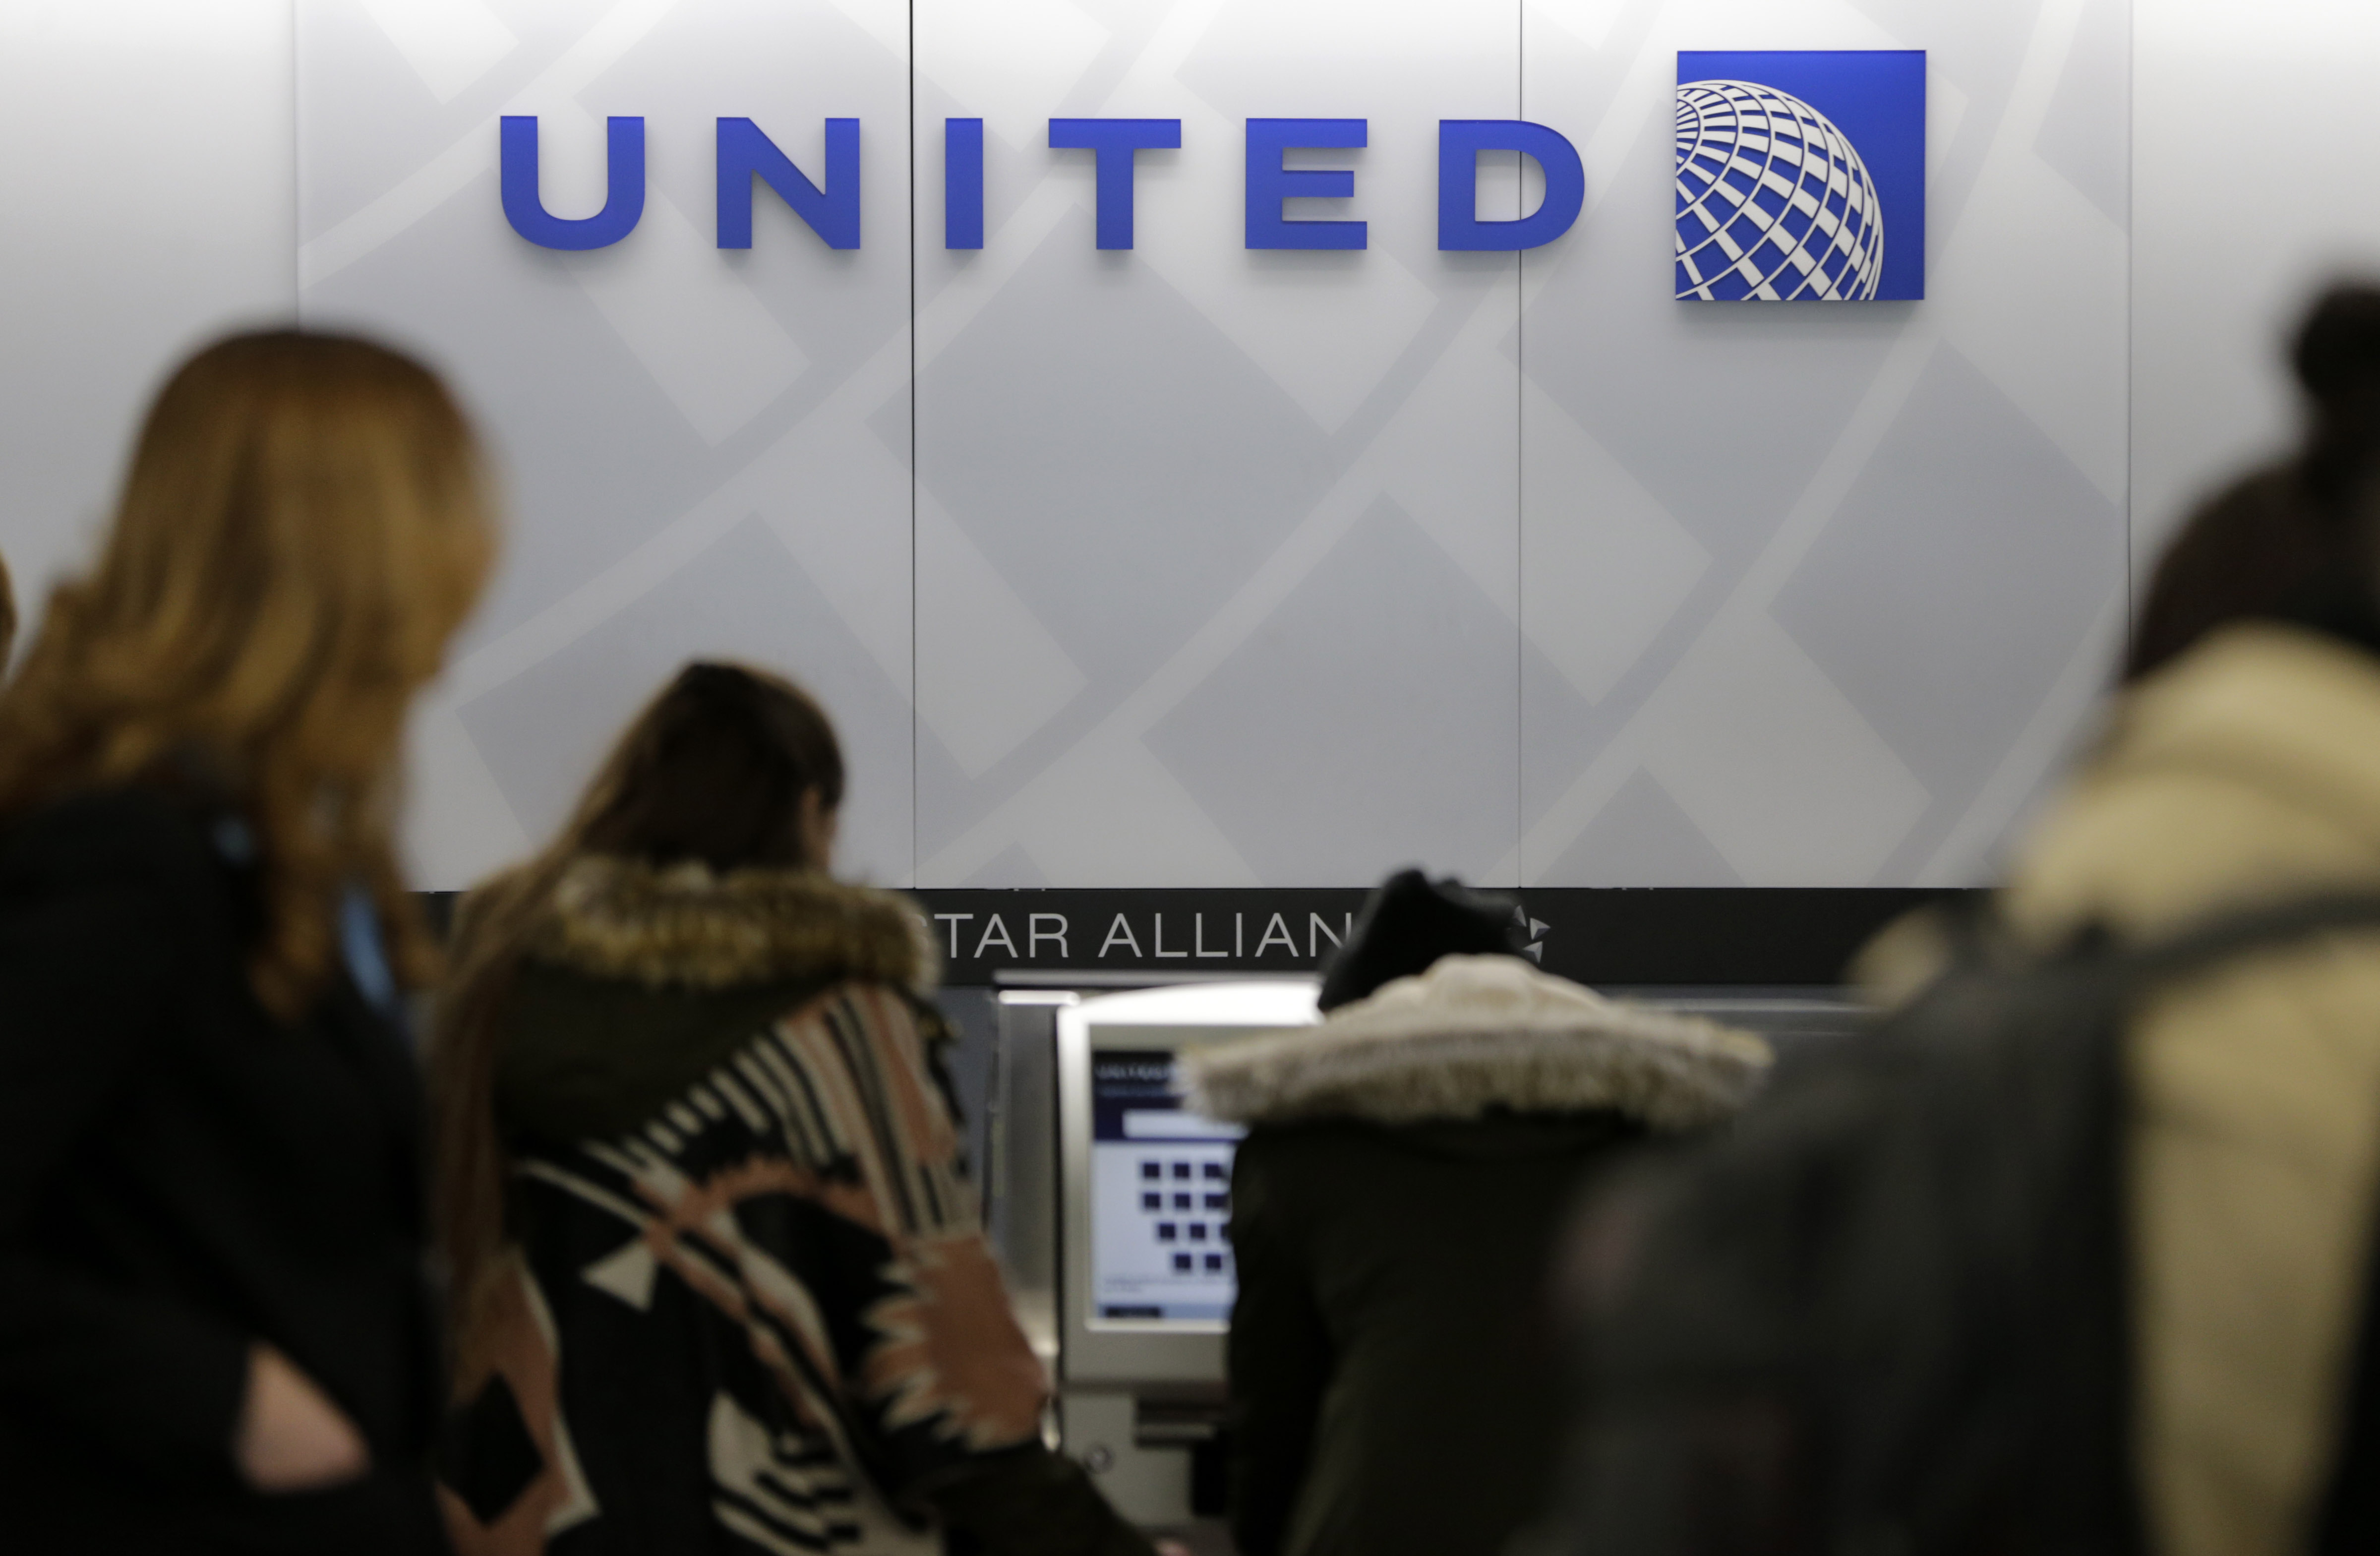 A United Airlines counter is seen at LaGuardia Airport in New York on March 15, 2017.